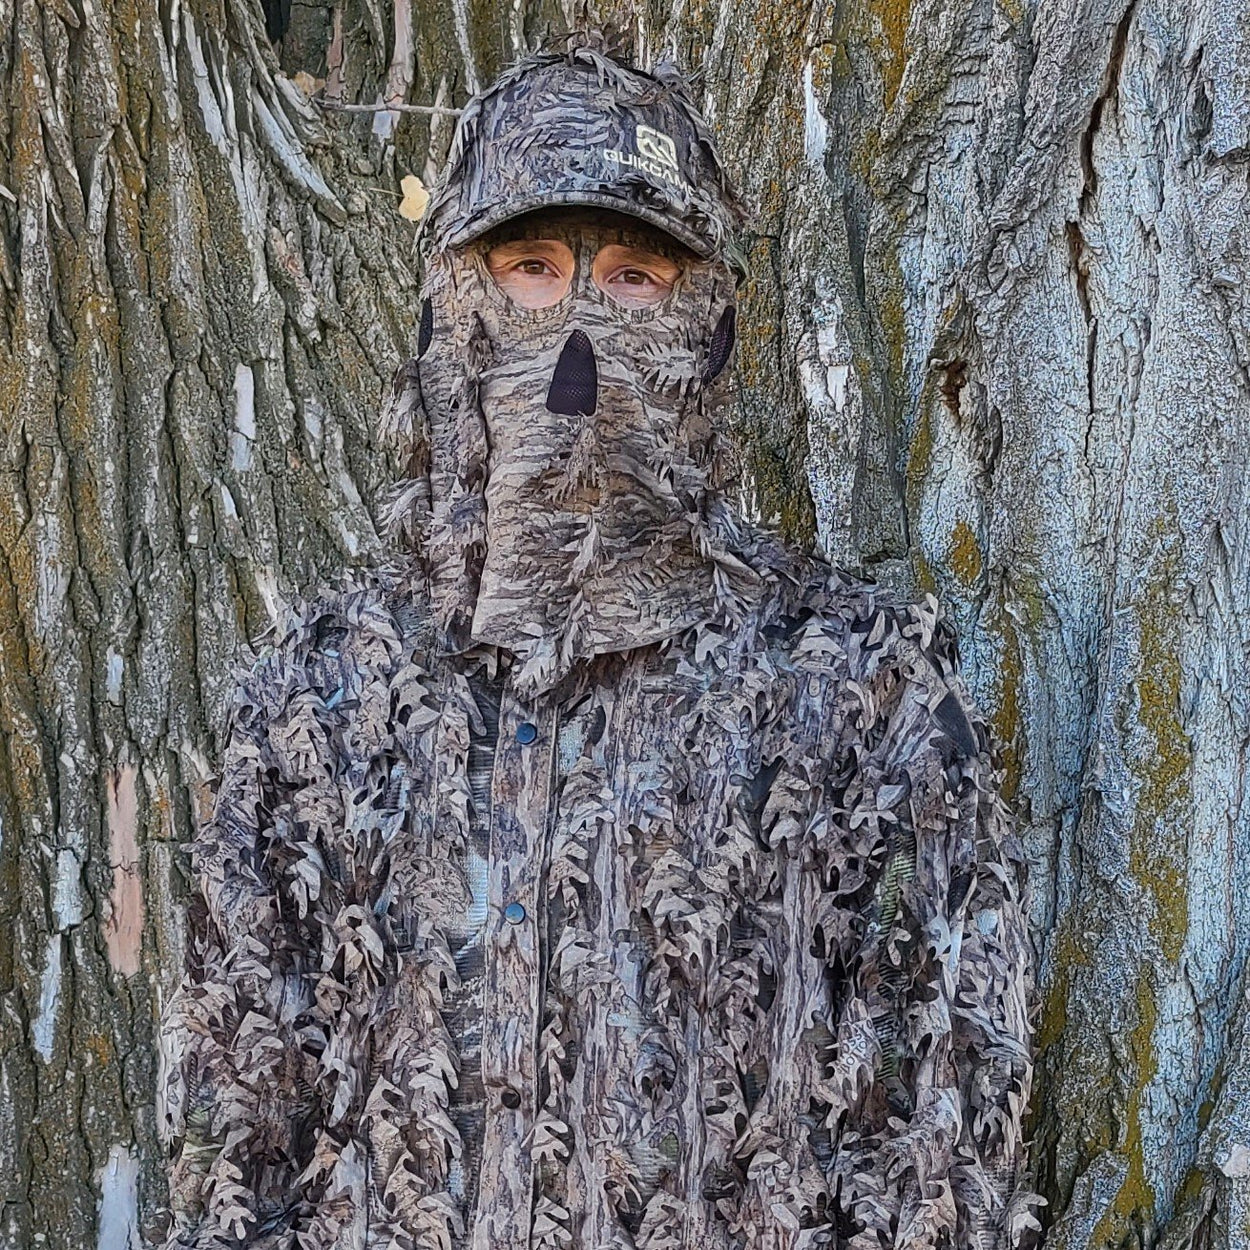 Mossy Oak New Bottomland Hat with Built-in Leafy Face Mask